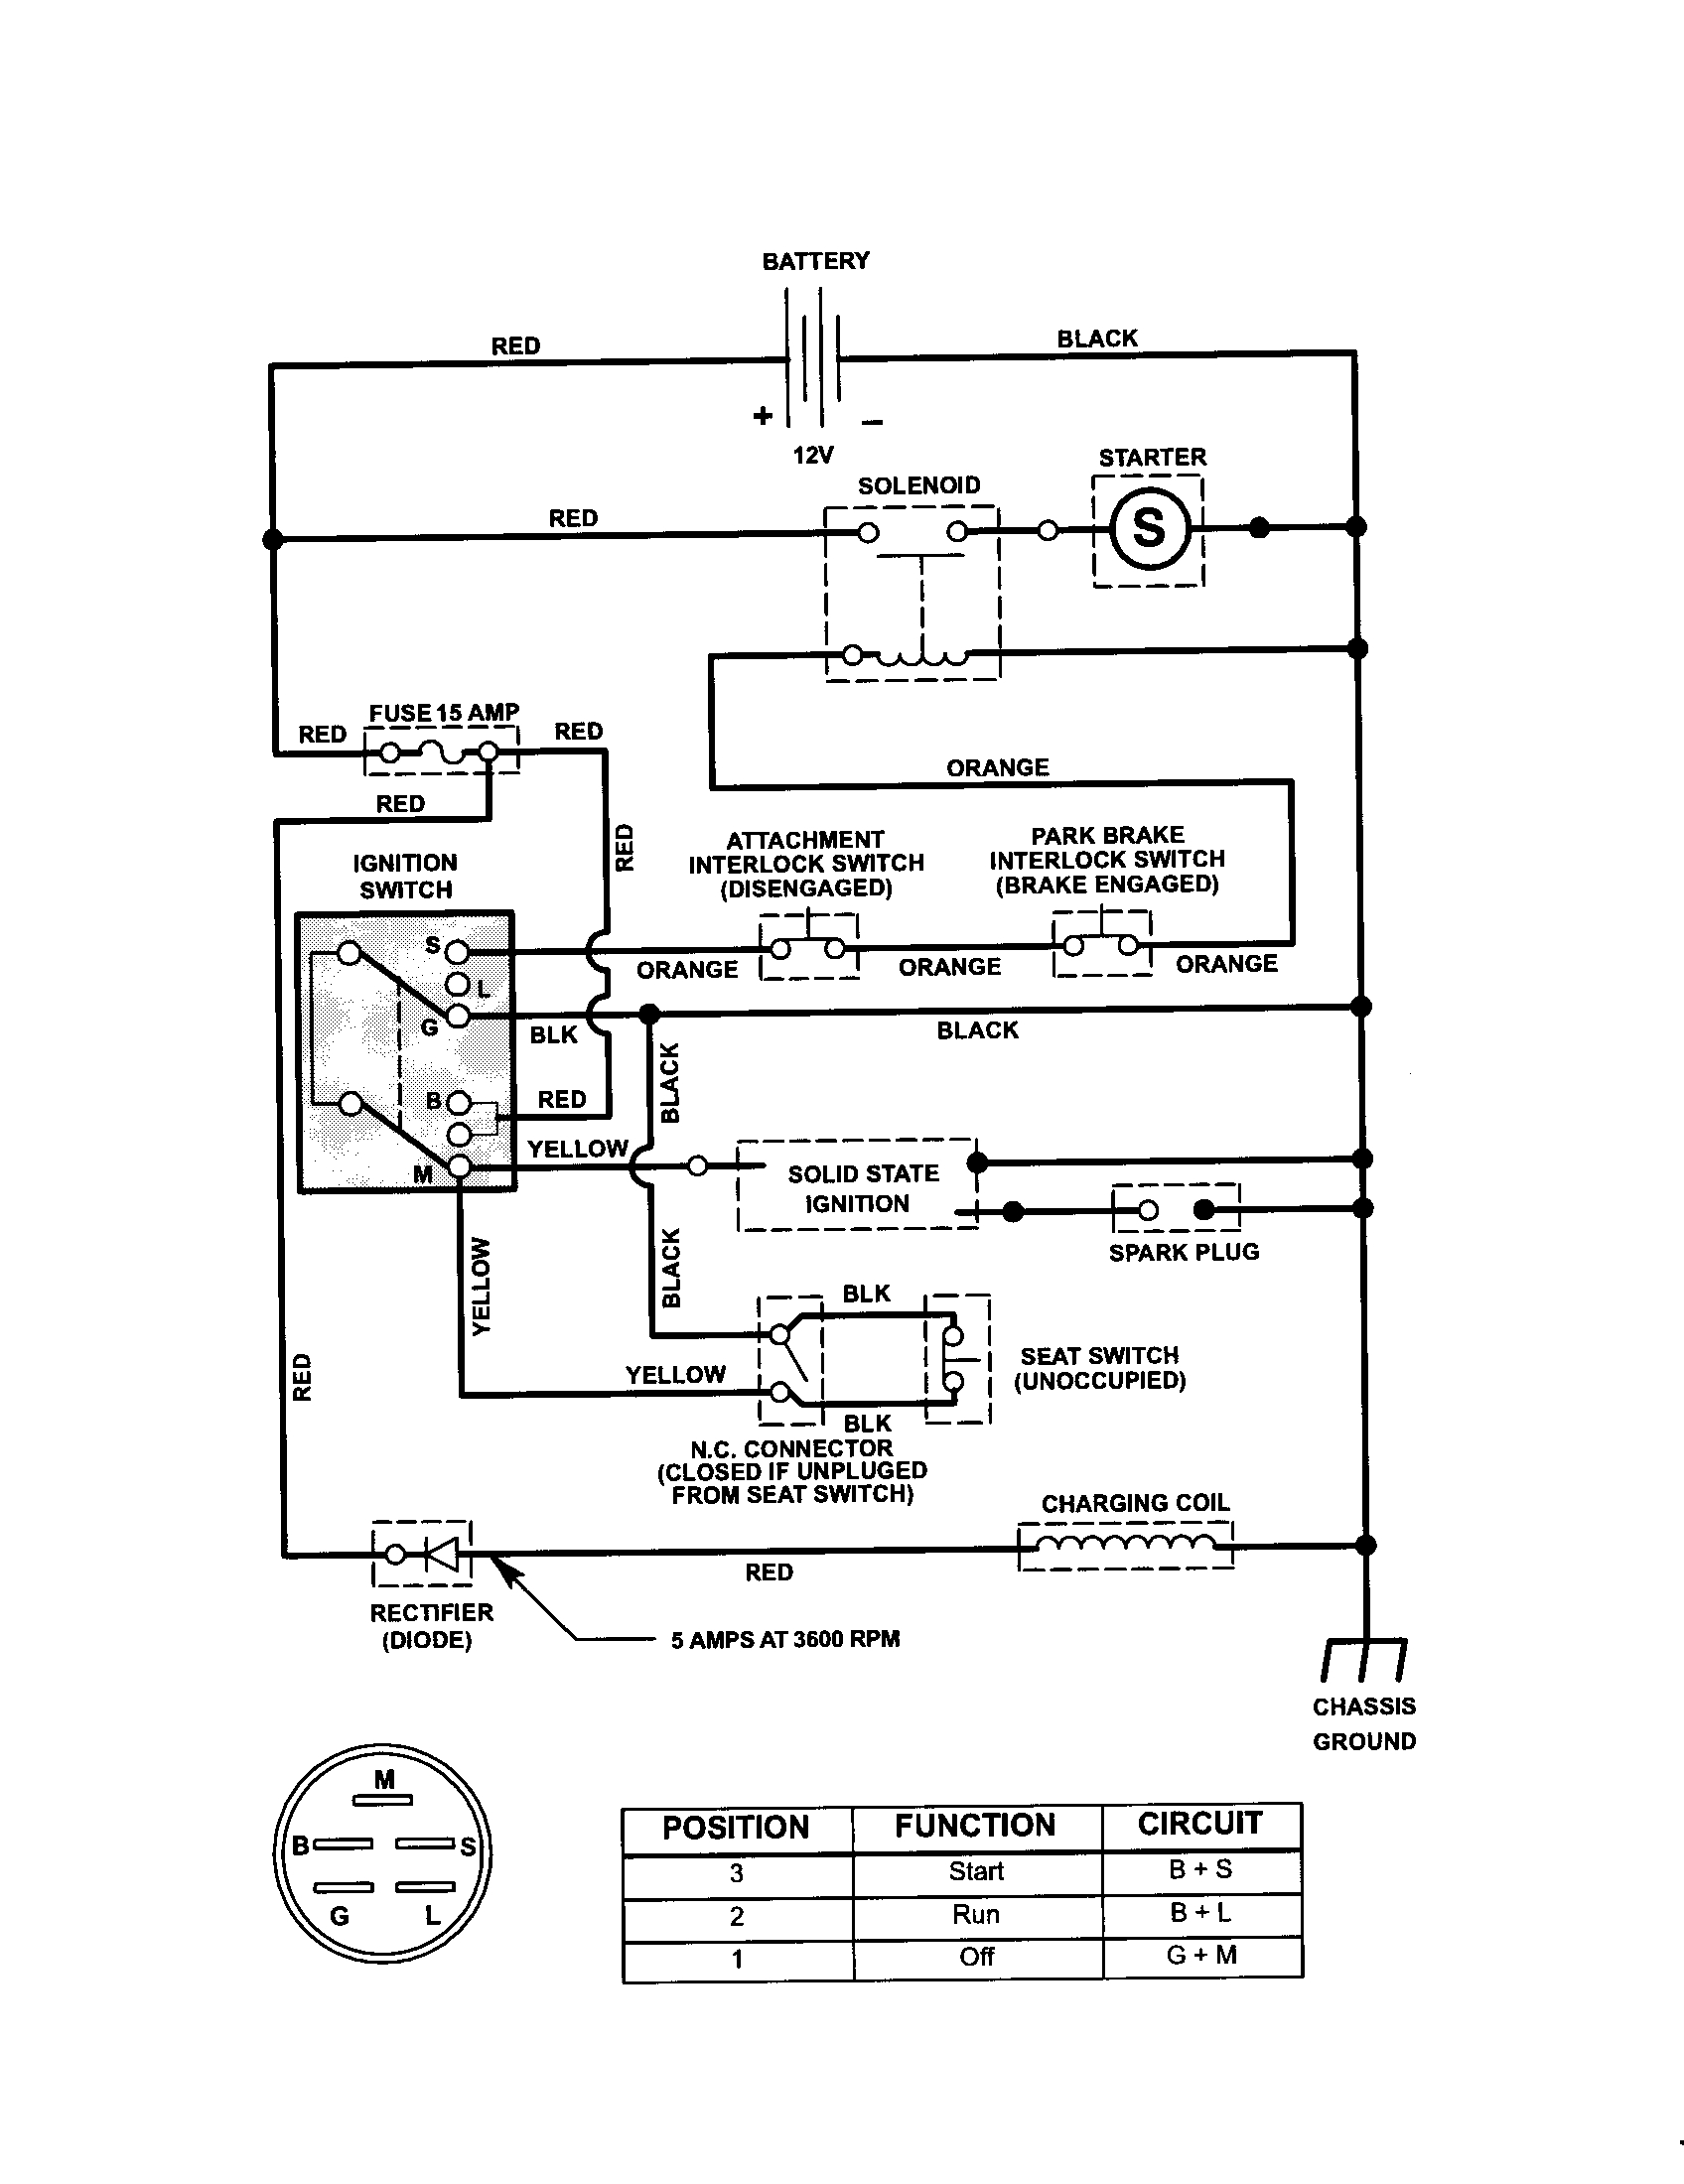 Craftsman Riding Mower Electrical Diagram | Pictures Of Craftsman - Briggs And Stratton V Twin Wiring Diagram